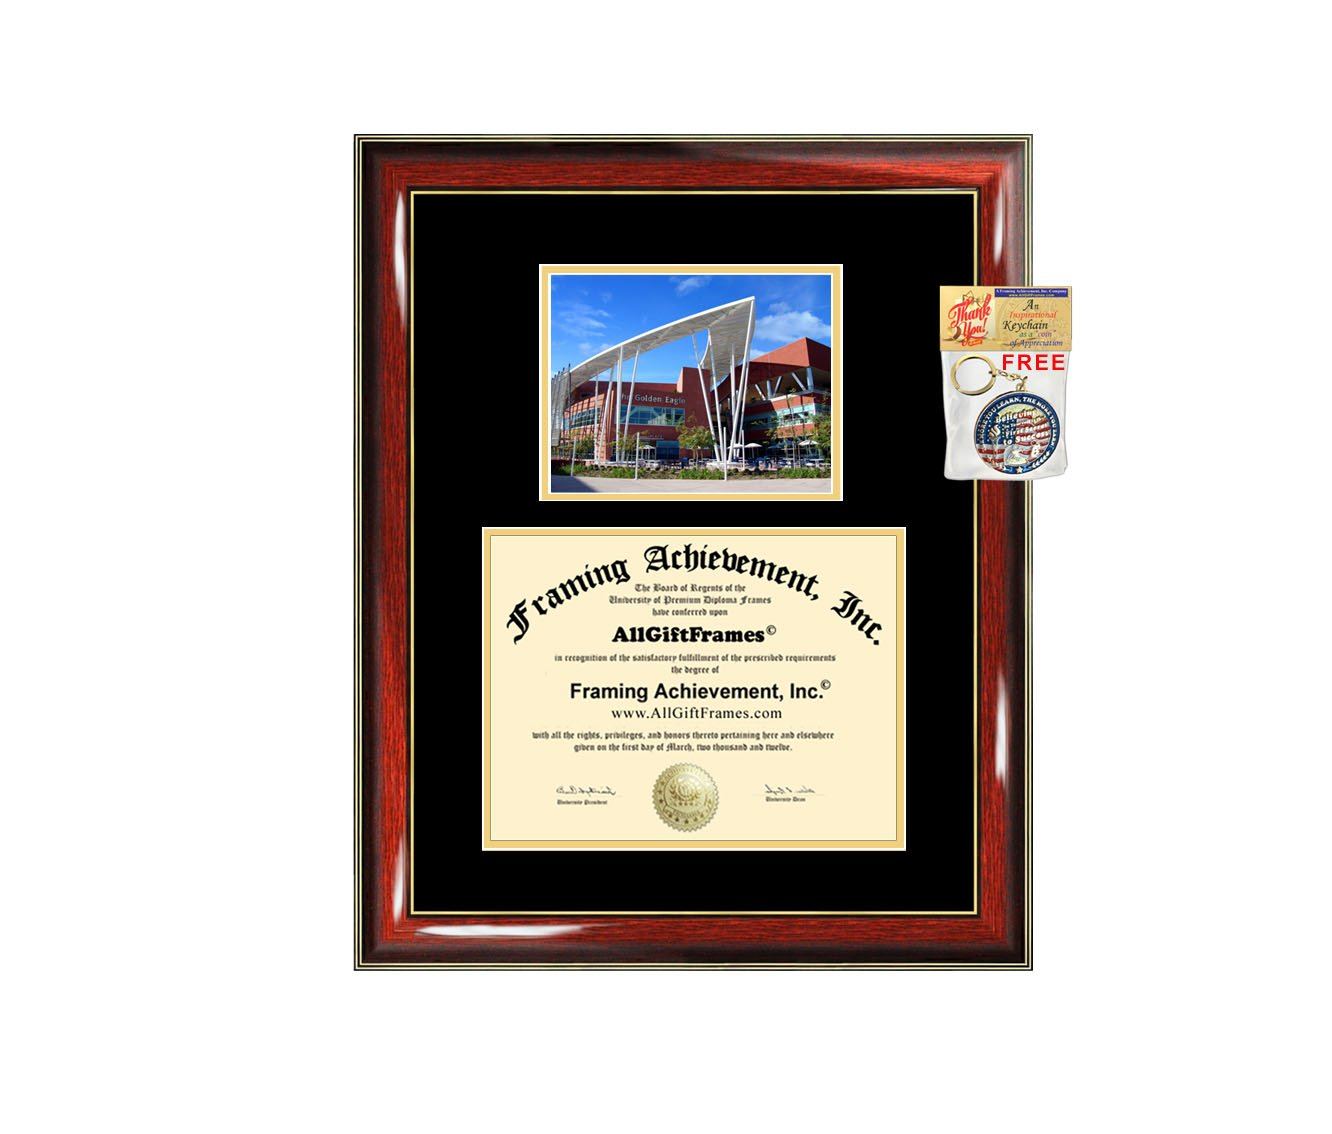 California State University Los Angeles Diploma Frame - CSULA Graduation Degree Frame - Matted Campus College Photo Graduation Certificate Plaque University Framing Graduate Gift Collegiate